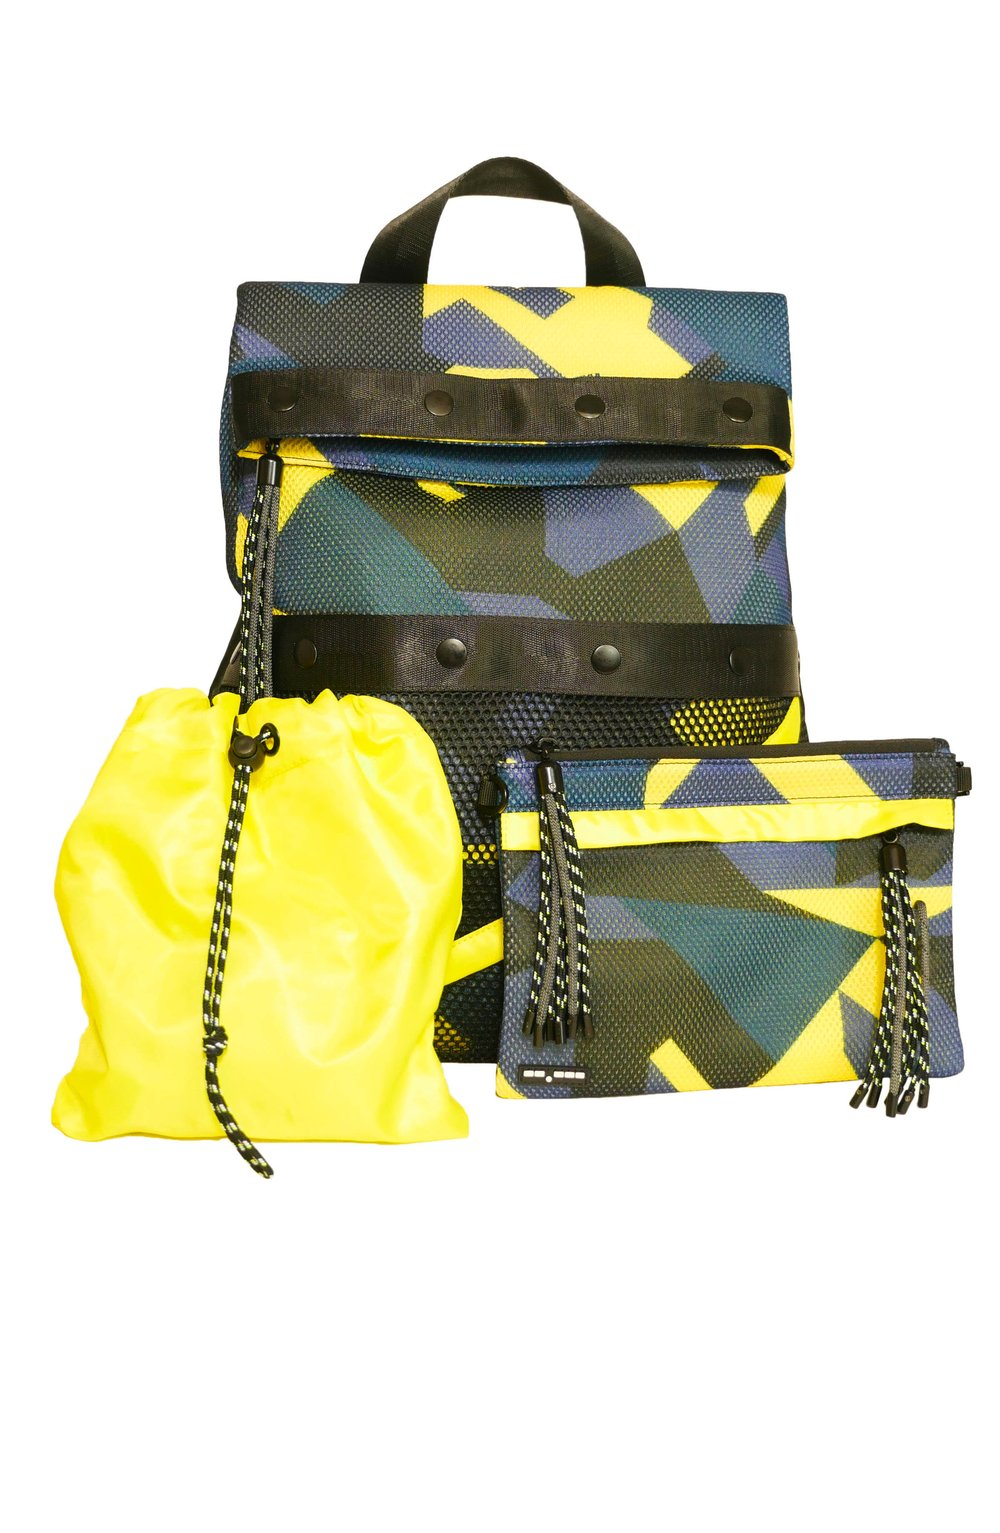 DASH PACK NAVY/YELLOW CAMO | GO DASH DOT